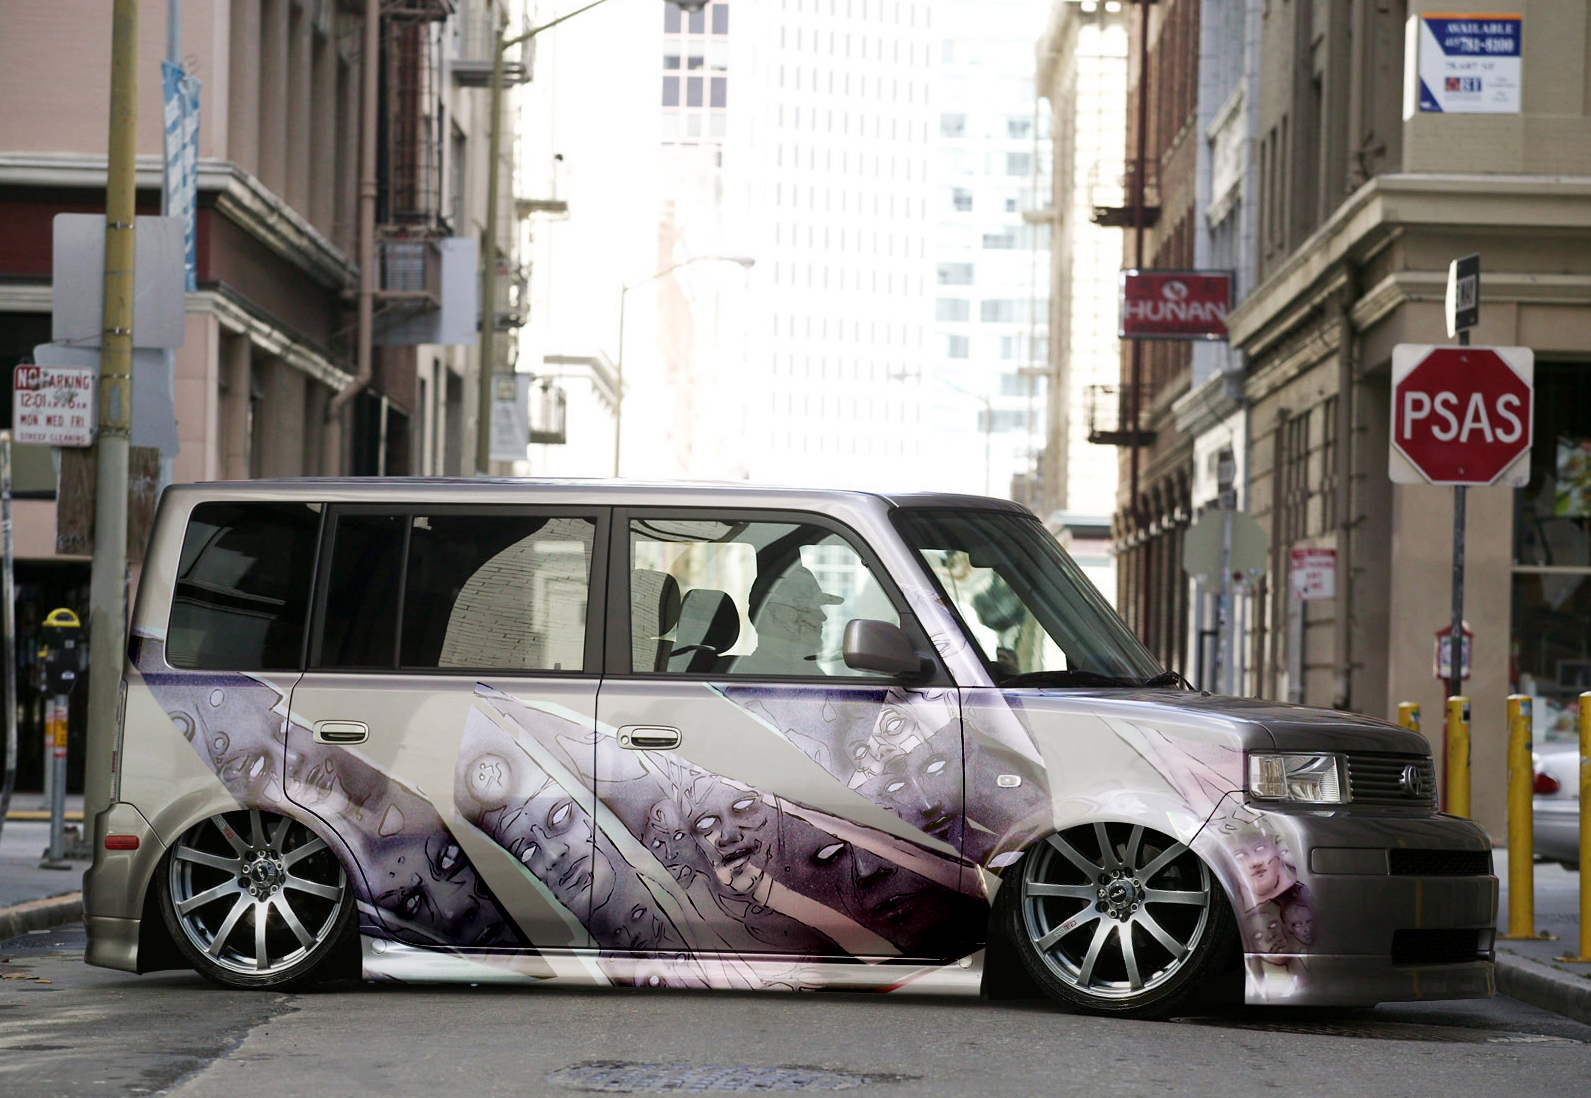 Artistra 8 4 Scion Xb   Faces By Psas